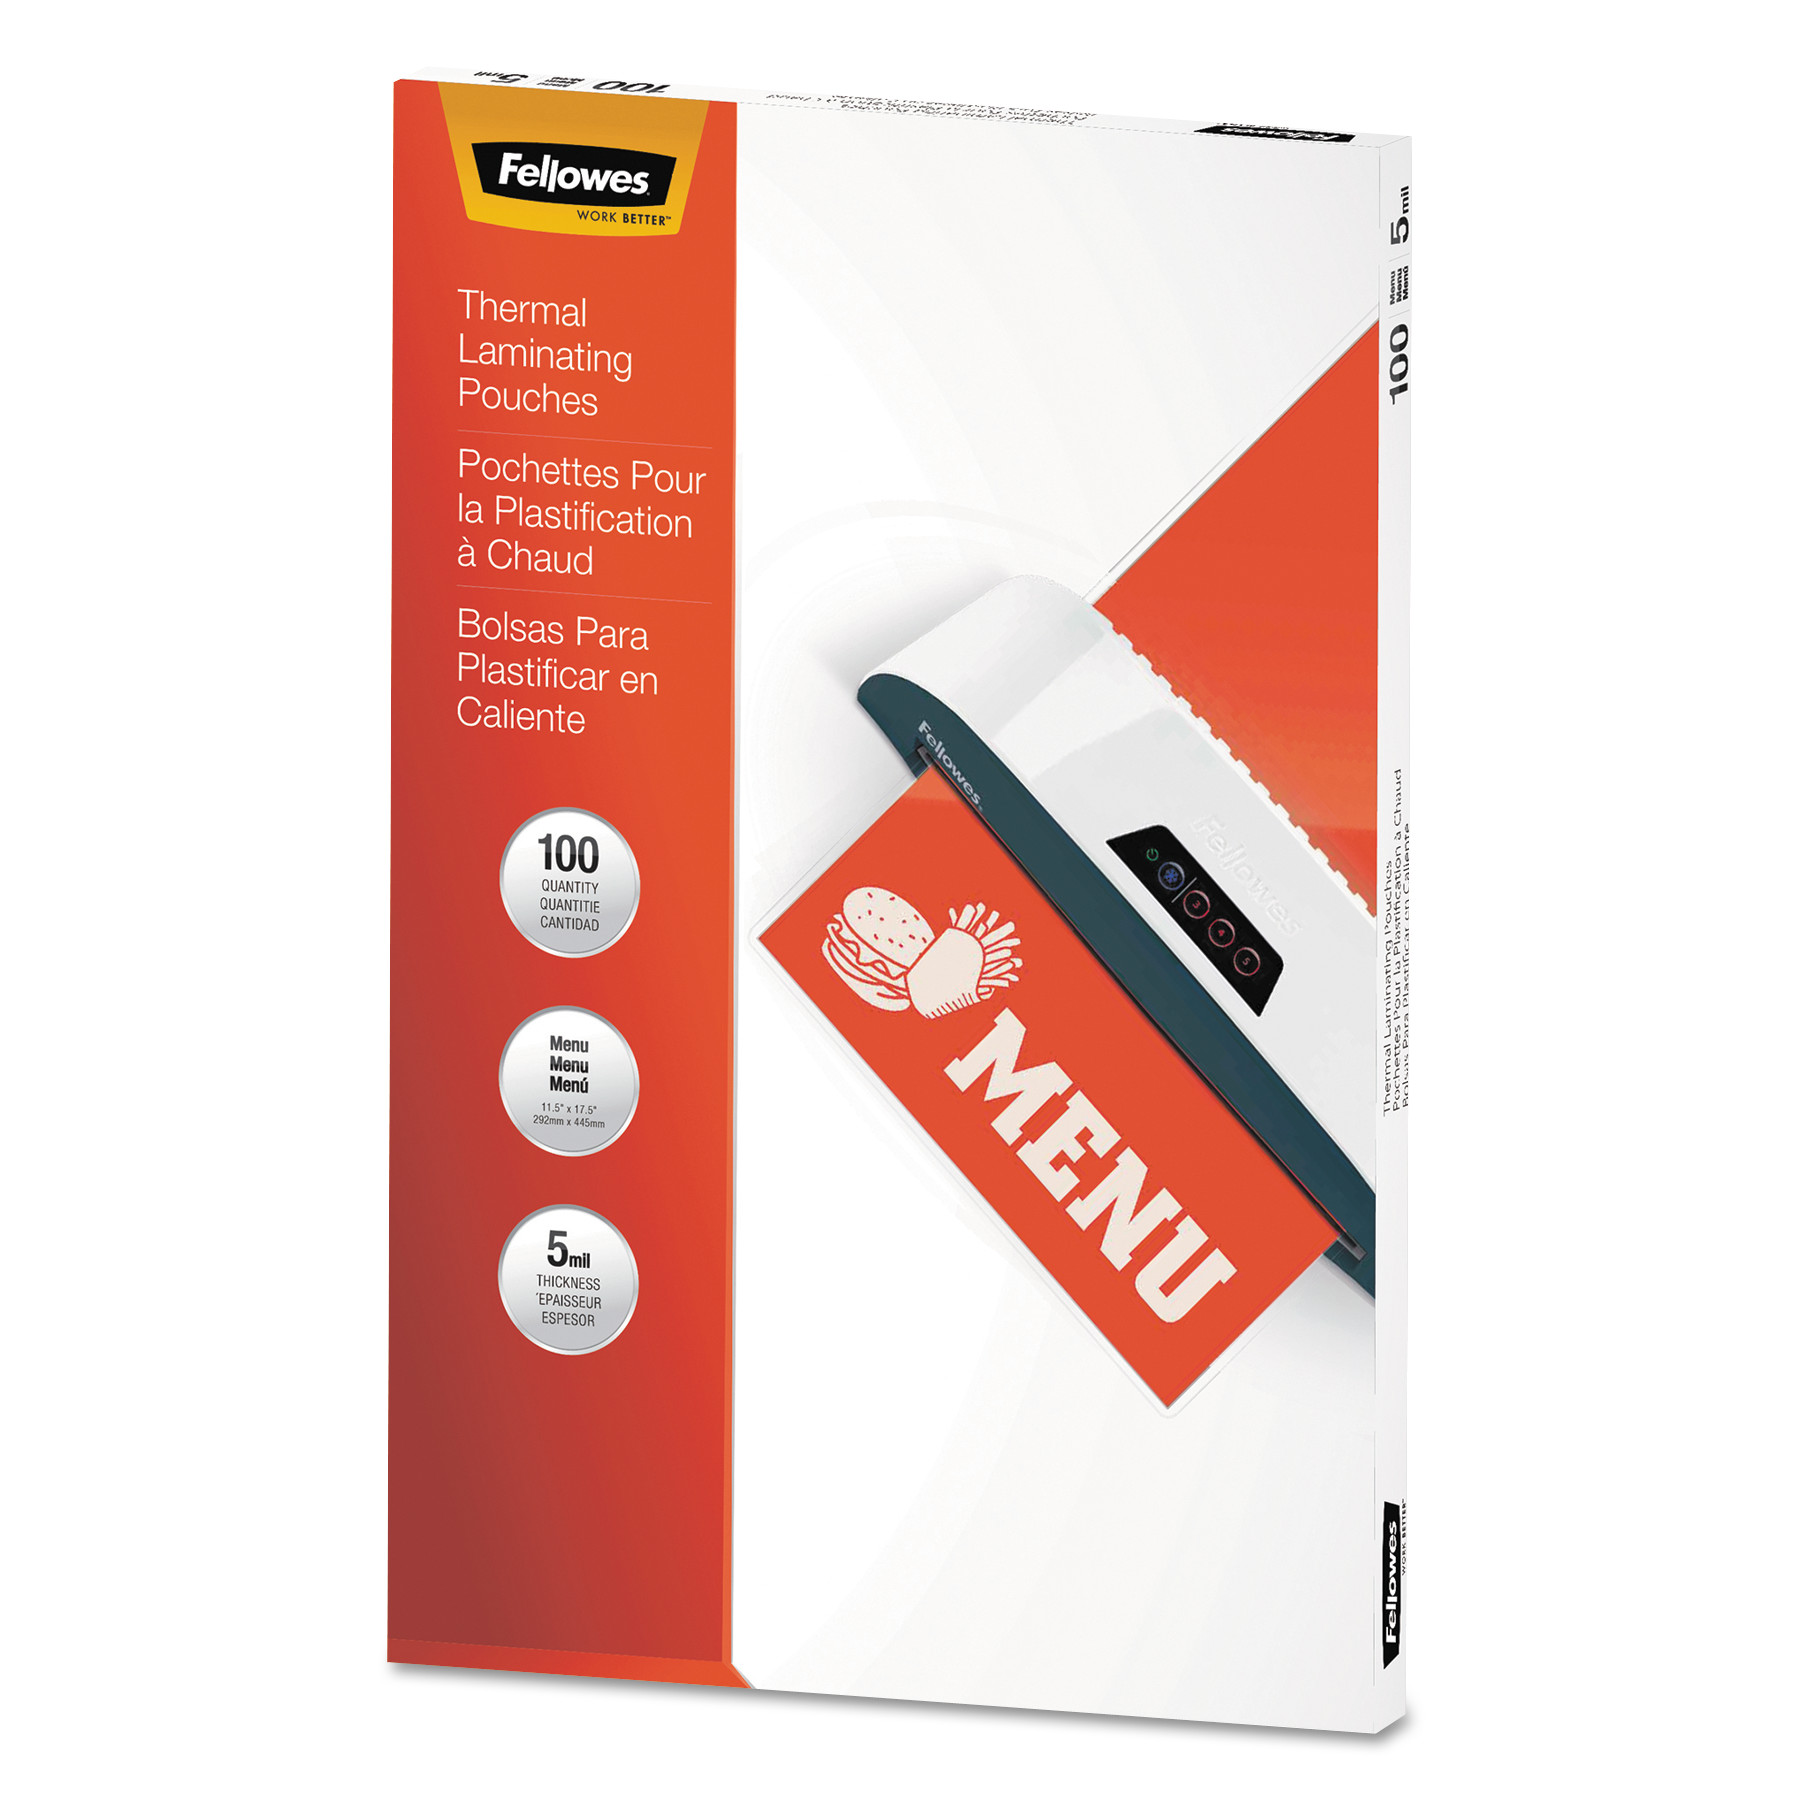 Fellowes Thermal Laminating Pouches, Menu, 5 mil, 100/Pack 5